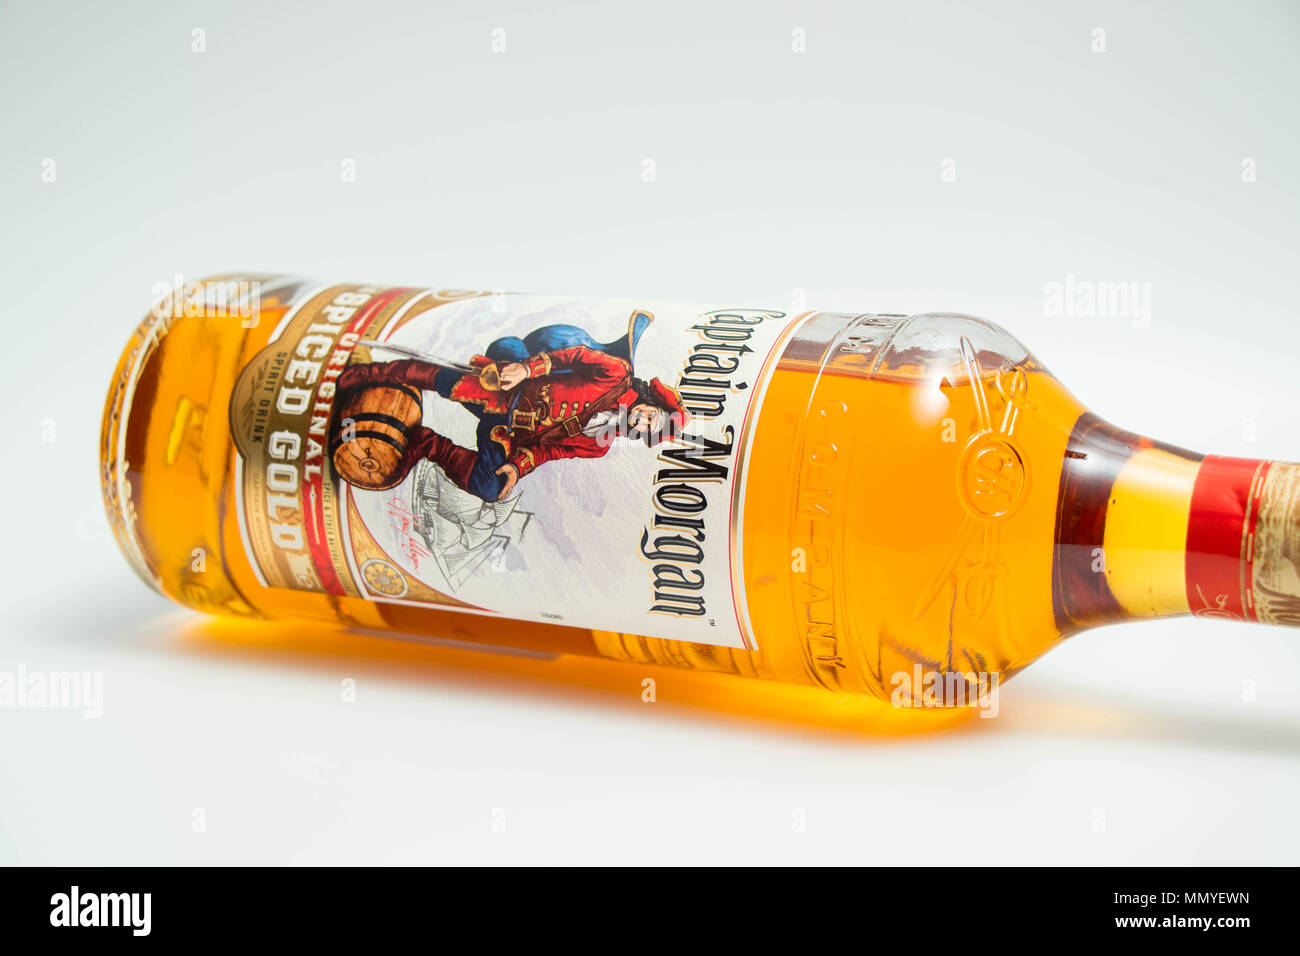 New Bottle of Captain Morgan Spiced Rum isolated on white Stock Photo